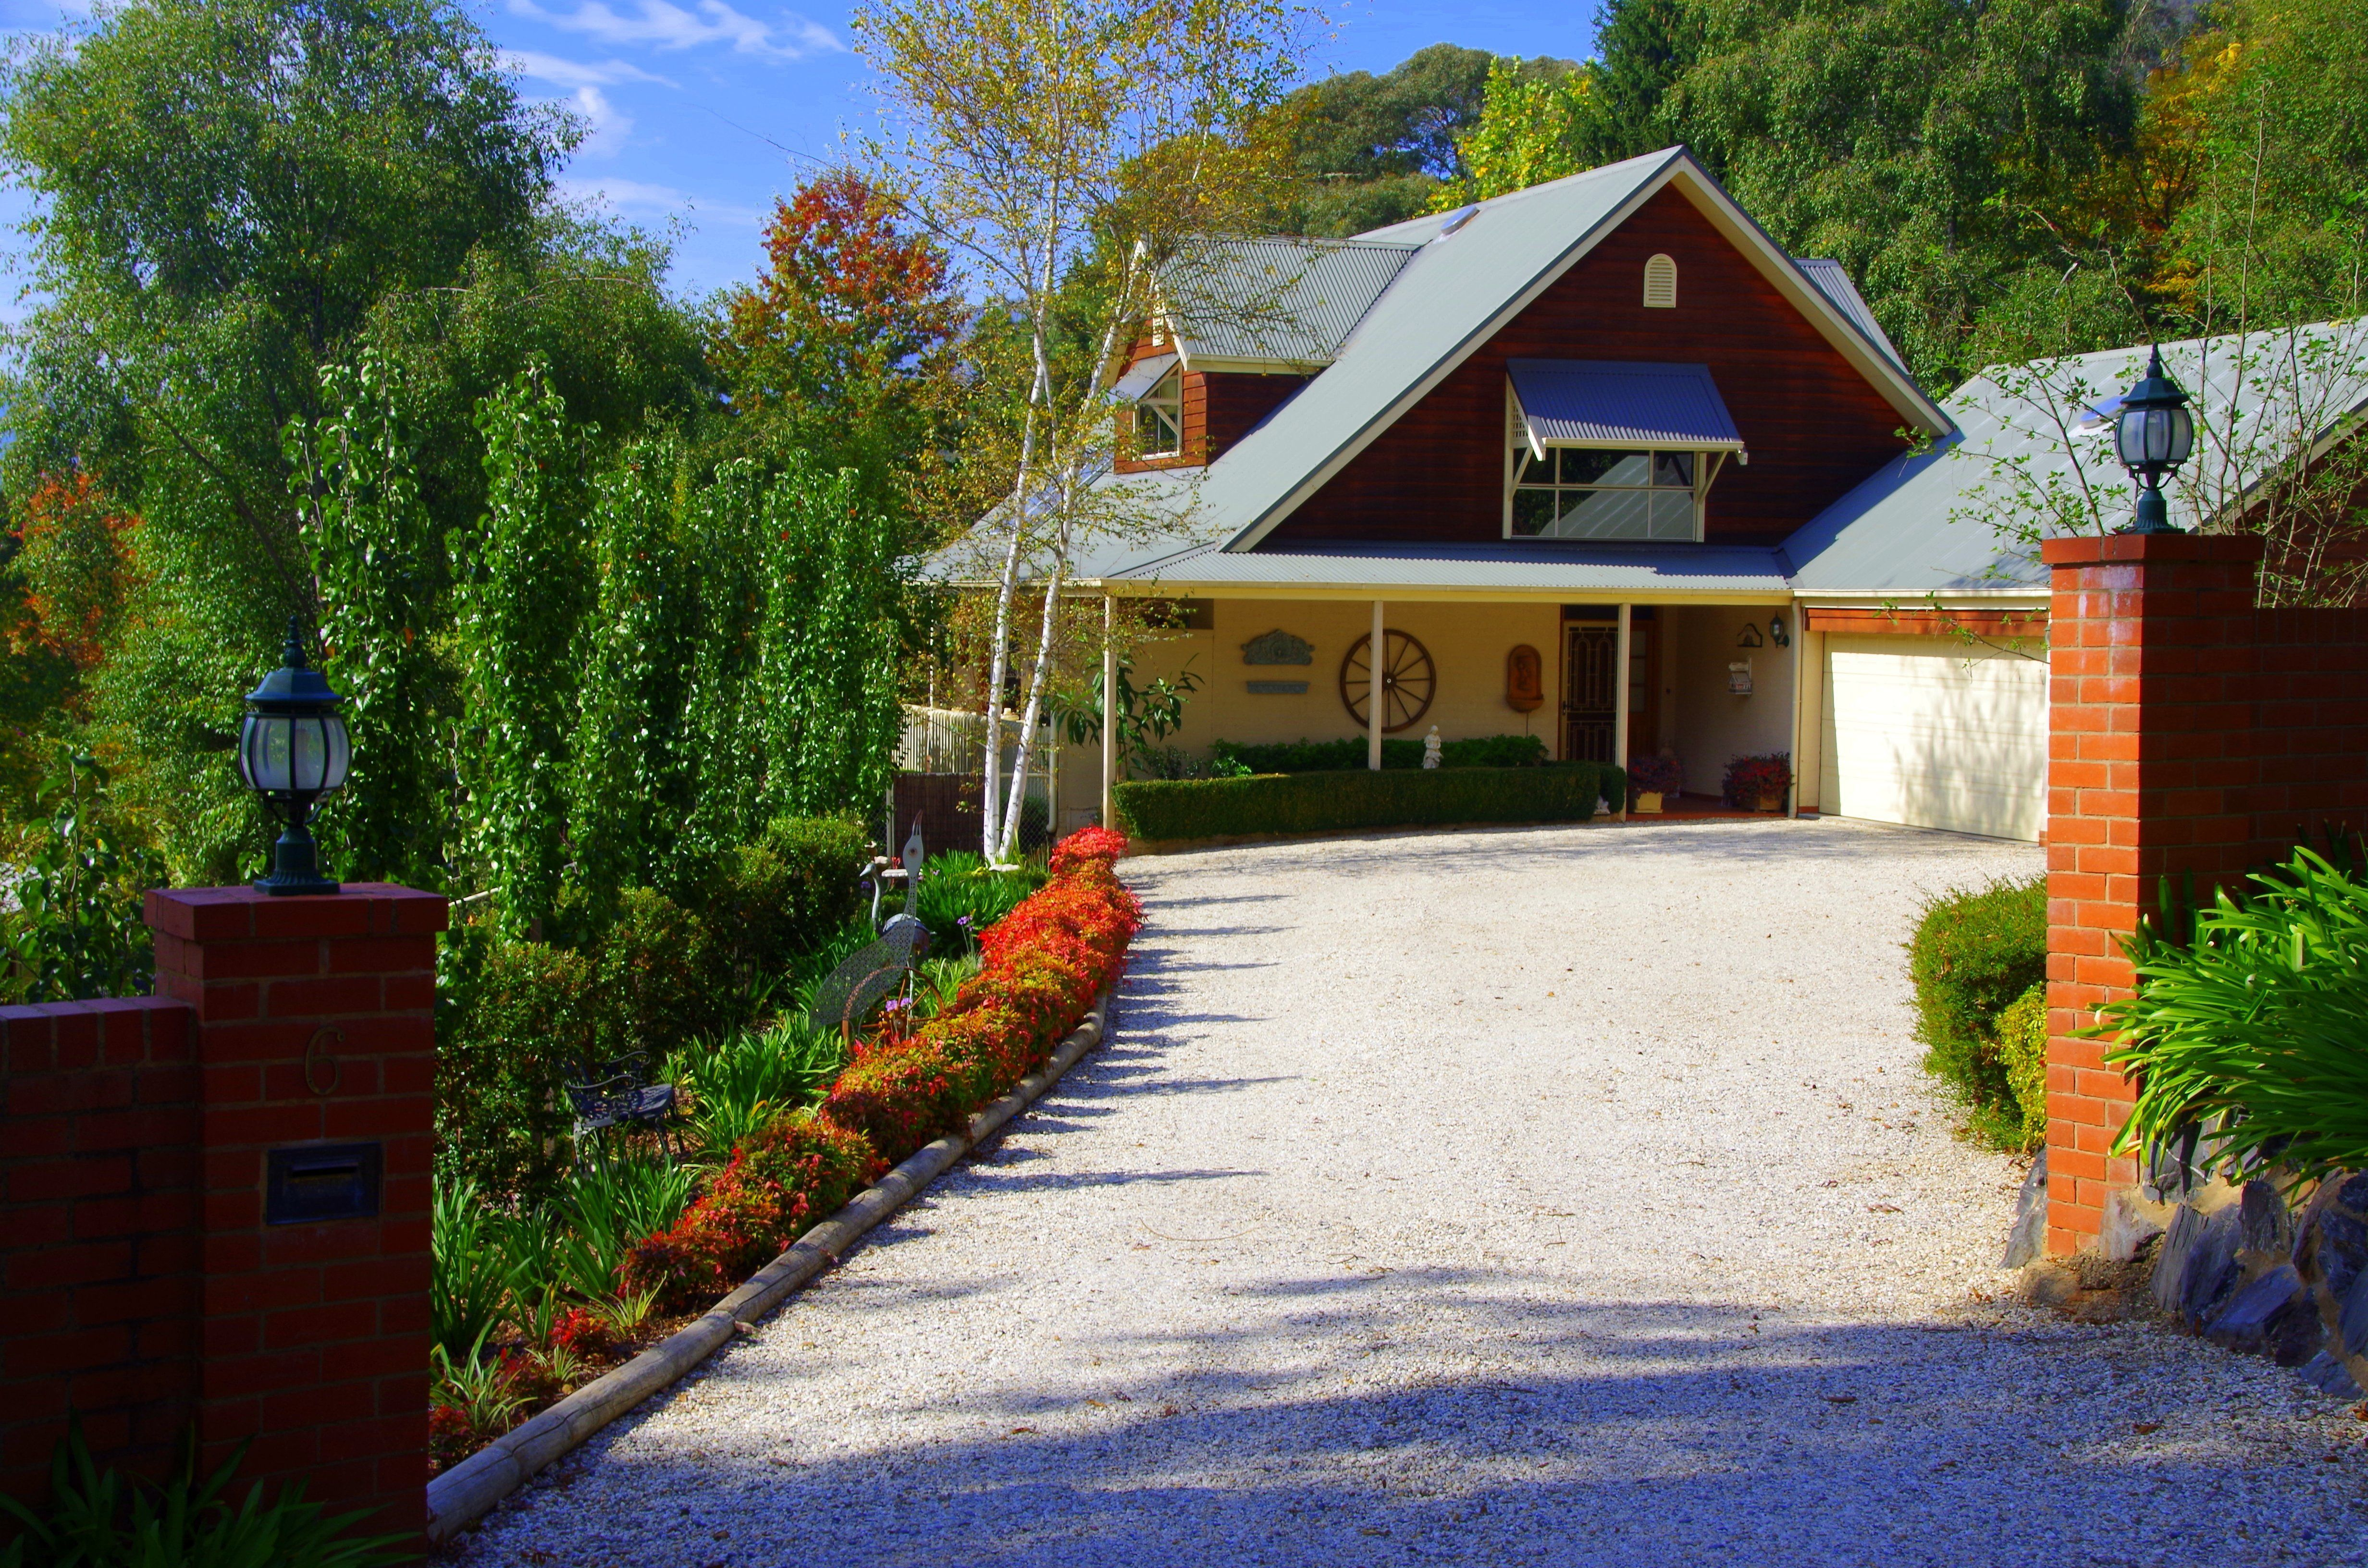 Quality Home with Exquisite Gardens